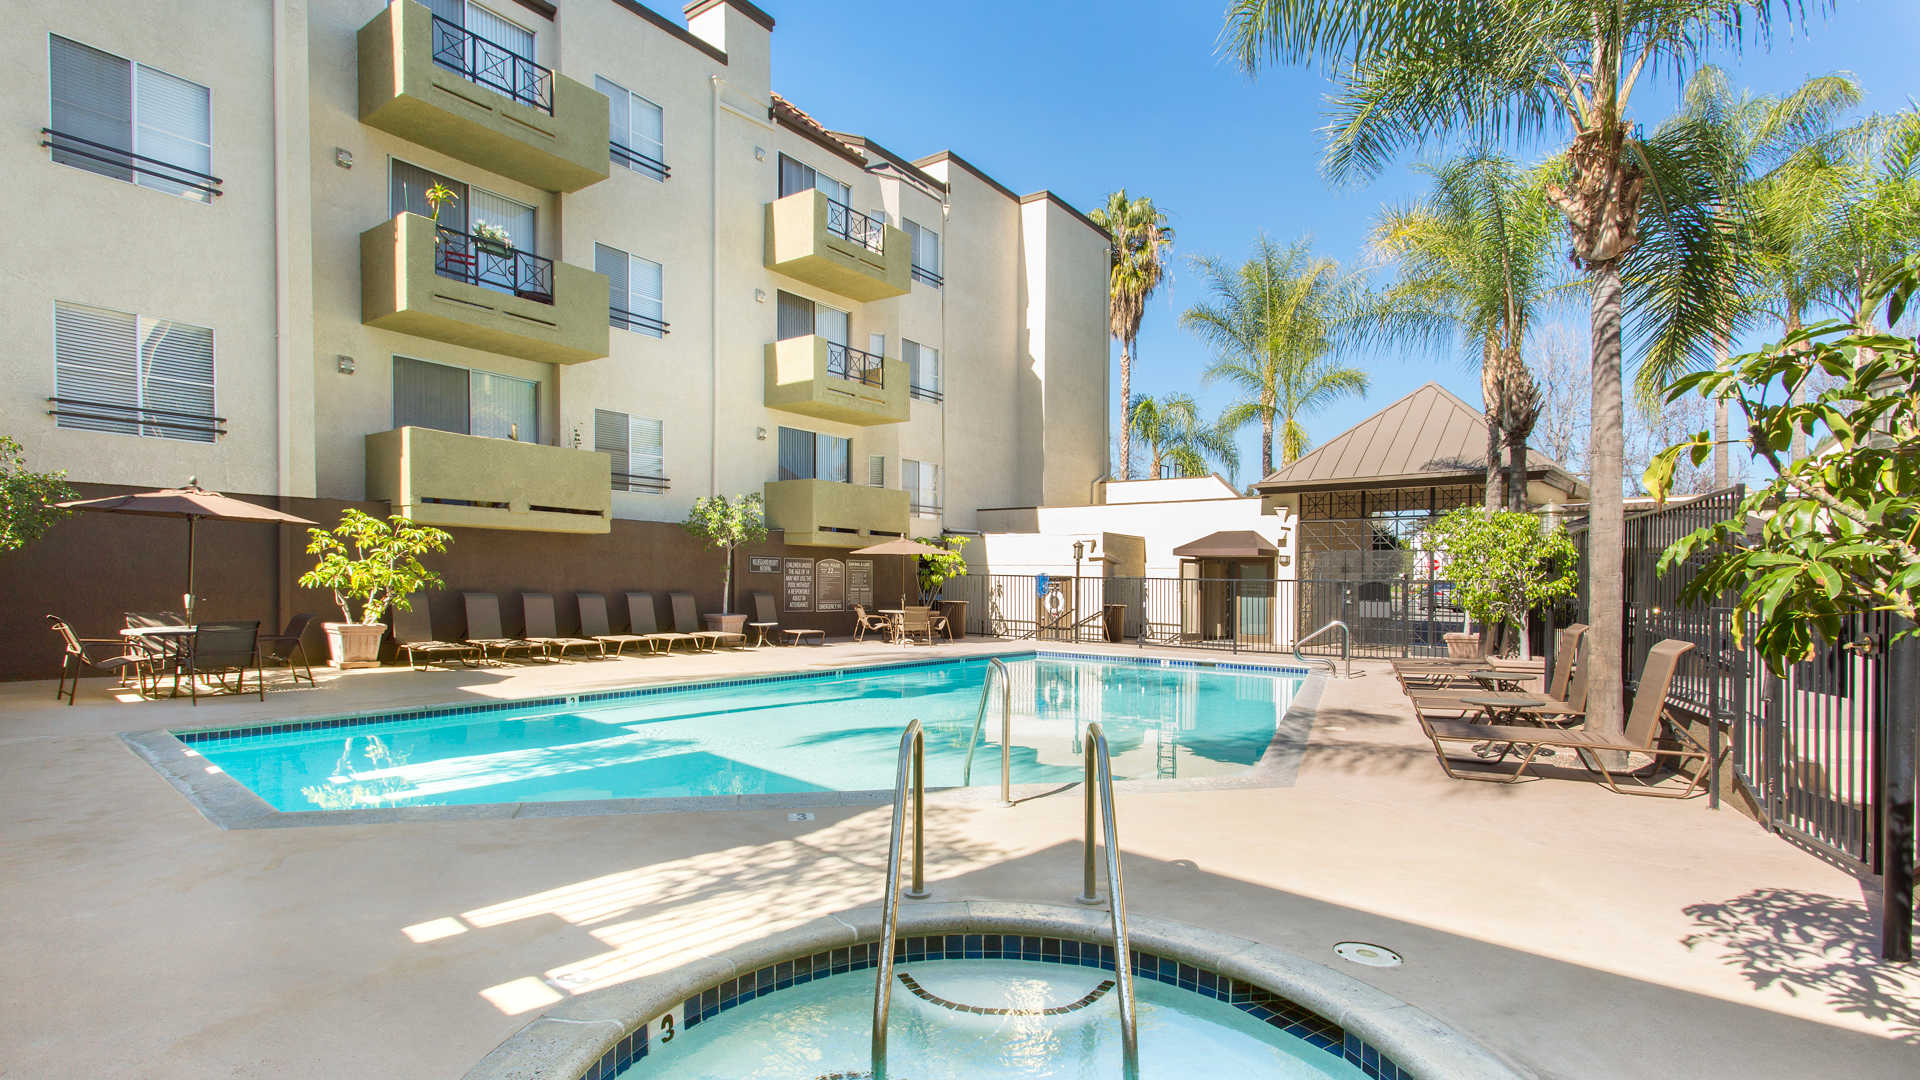 20 Best Apartments For Rent In Burbank, CA (with pictures)!